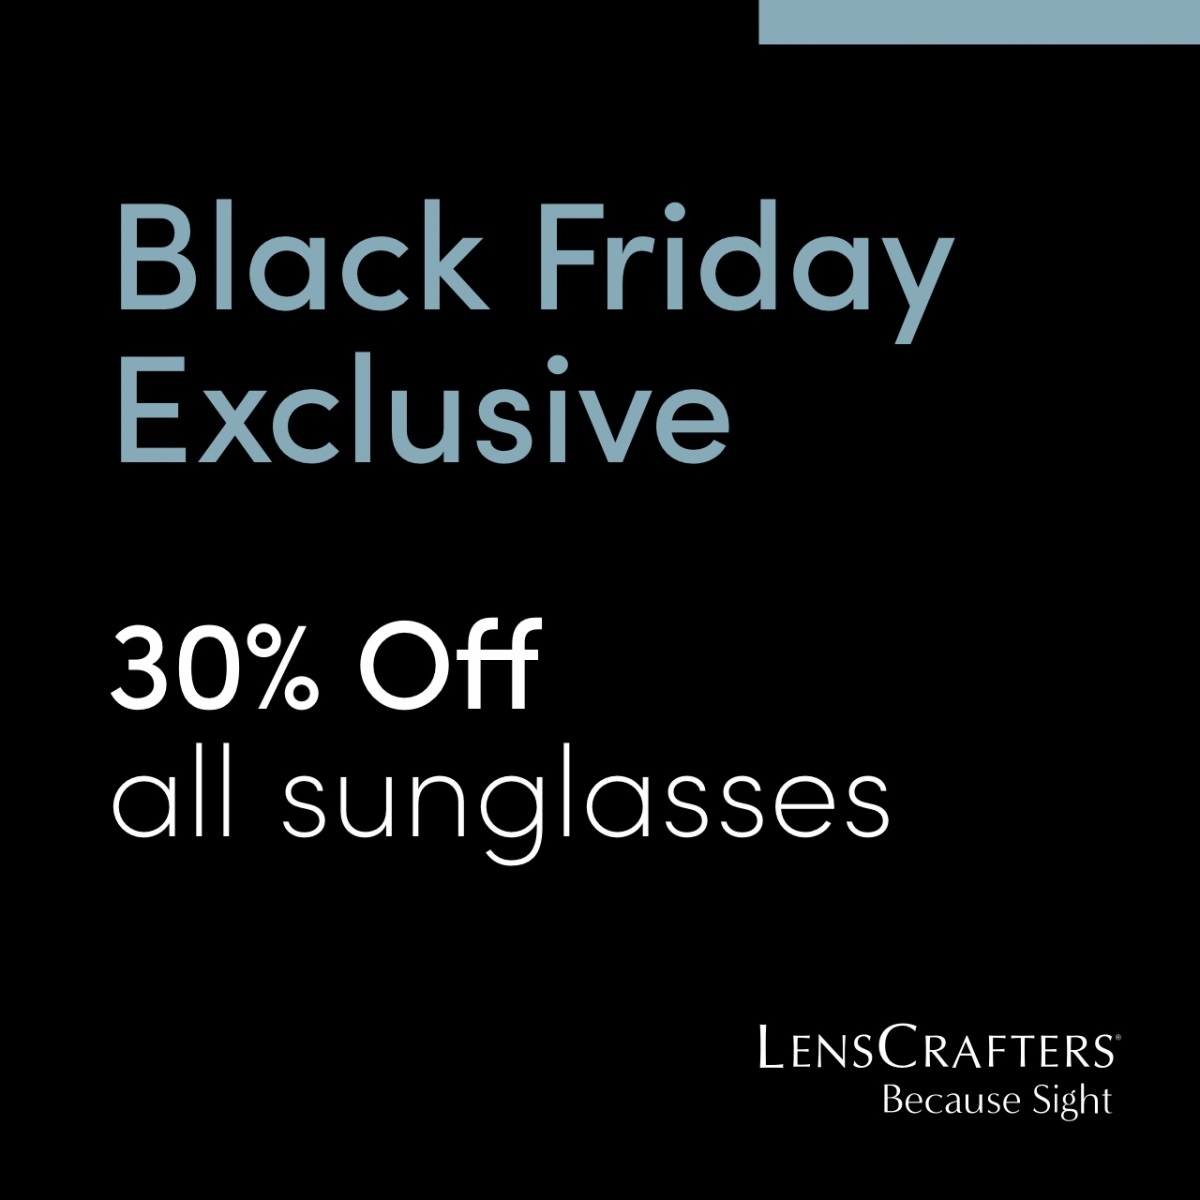 30% off all sunglasses!